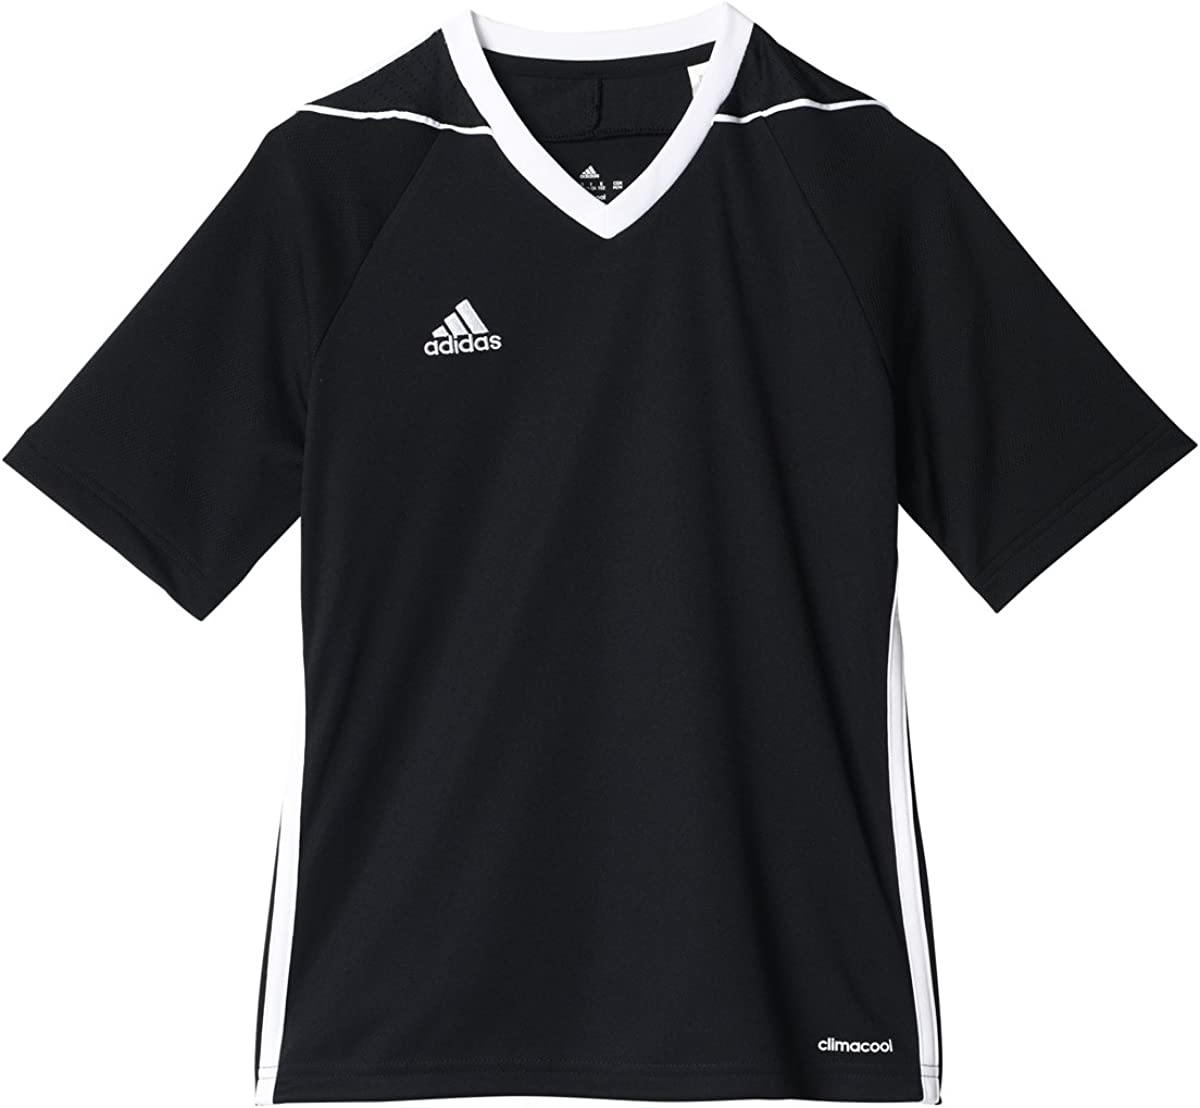 adidas Youth Tiro 17 Jersey